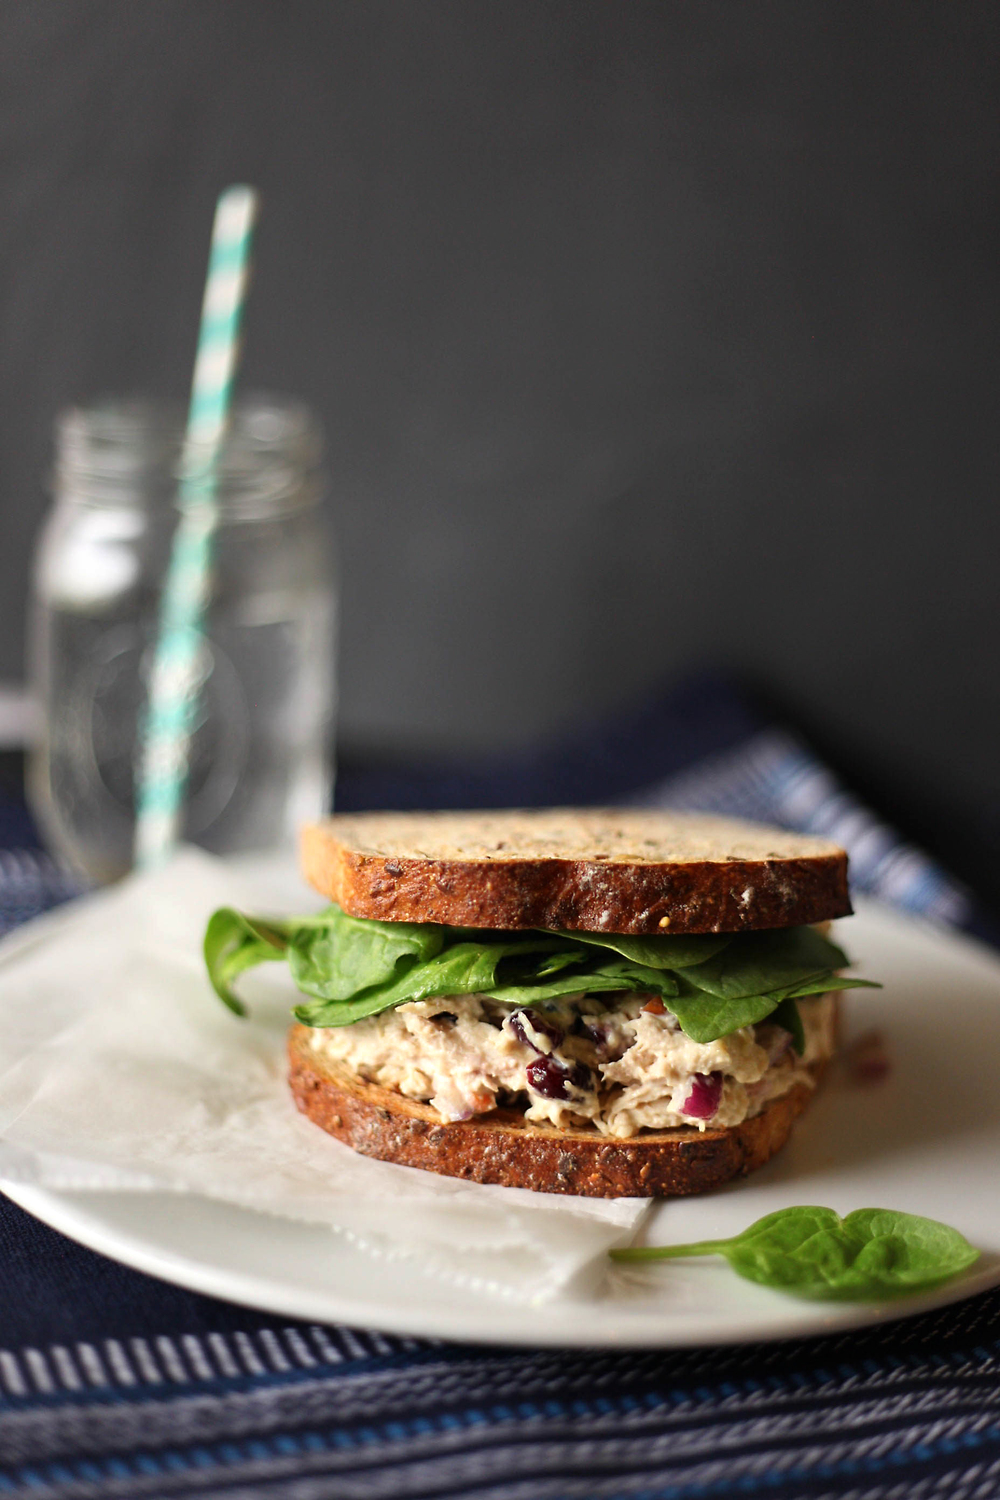 Chicken Salad Sandwich from The Jam Coffeehouse